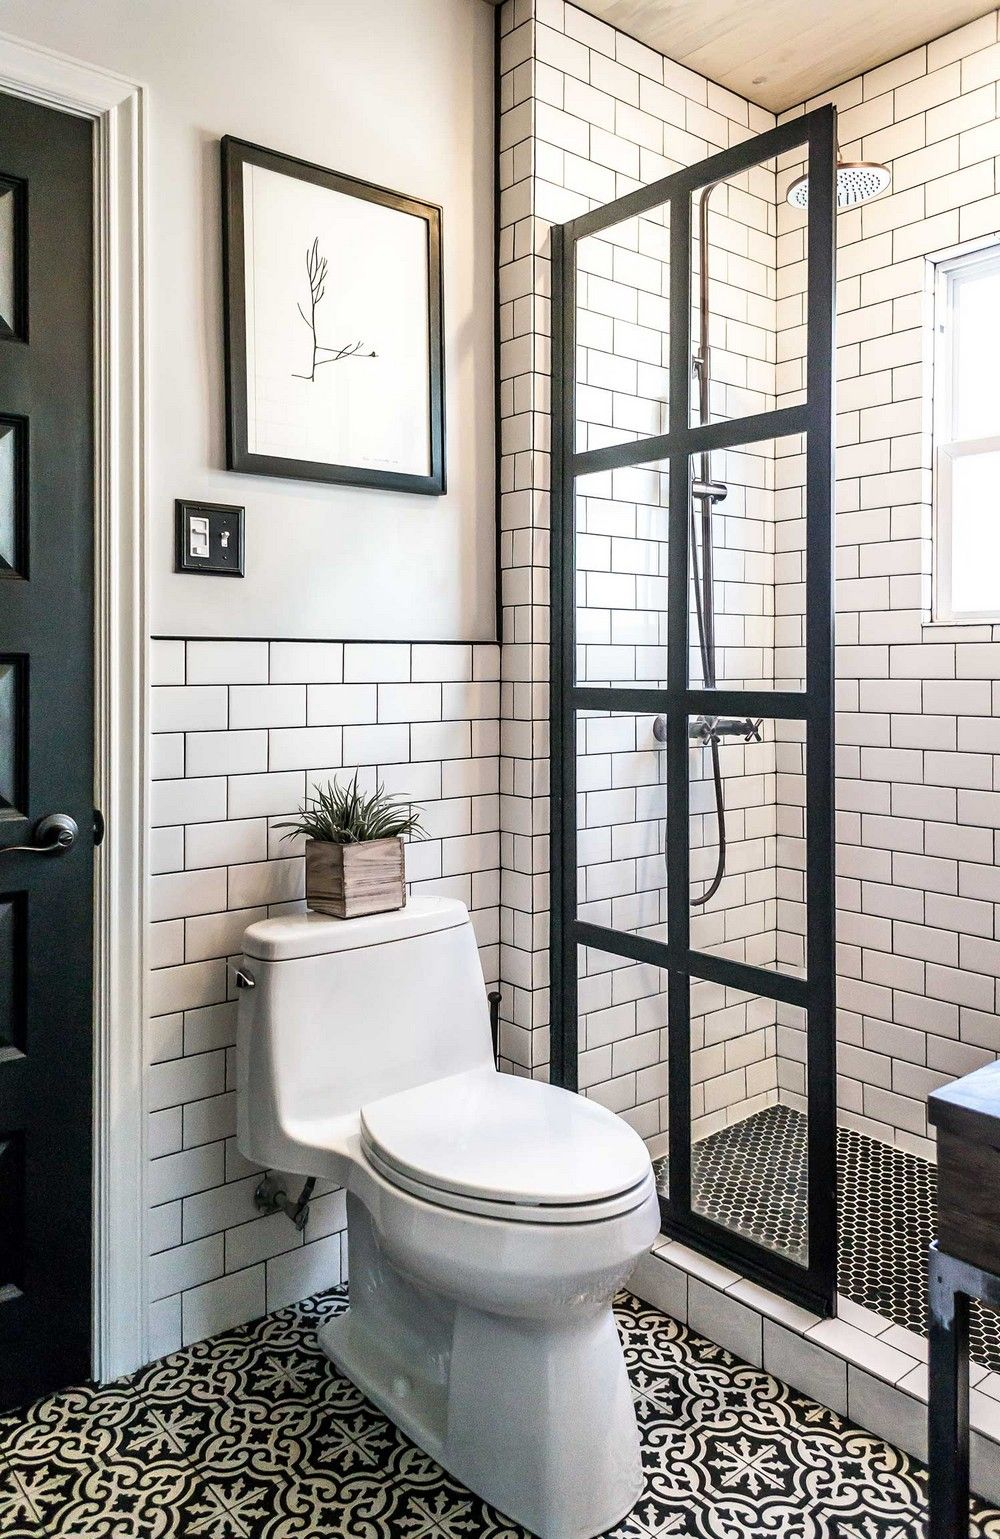 106 Clever Small Bathroom Decorating Ideas | Small bathroom, Clever ...